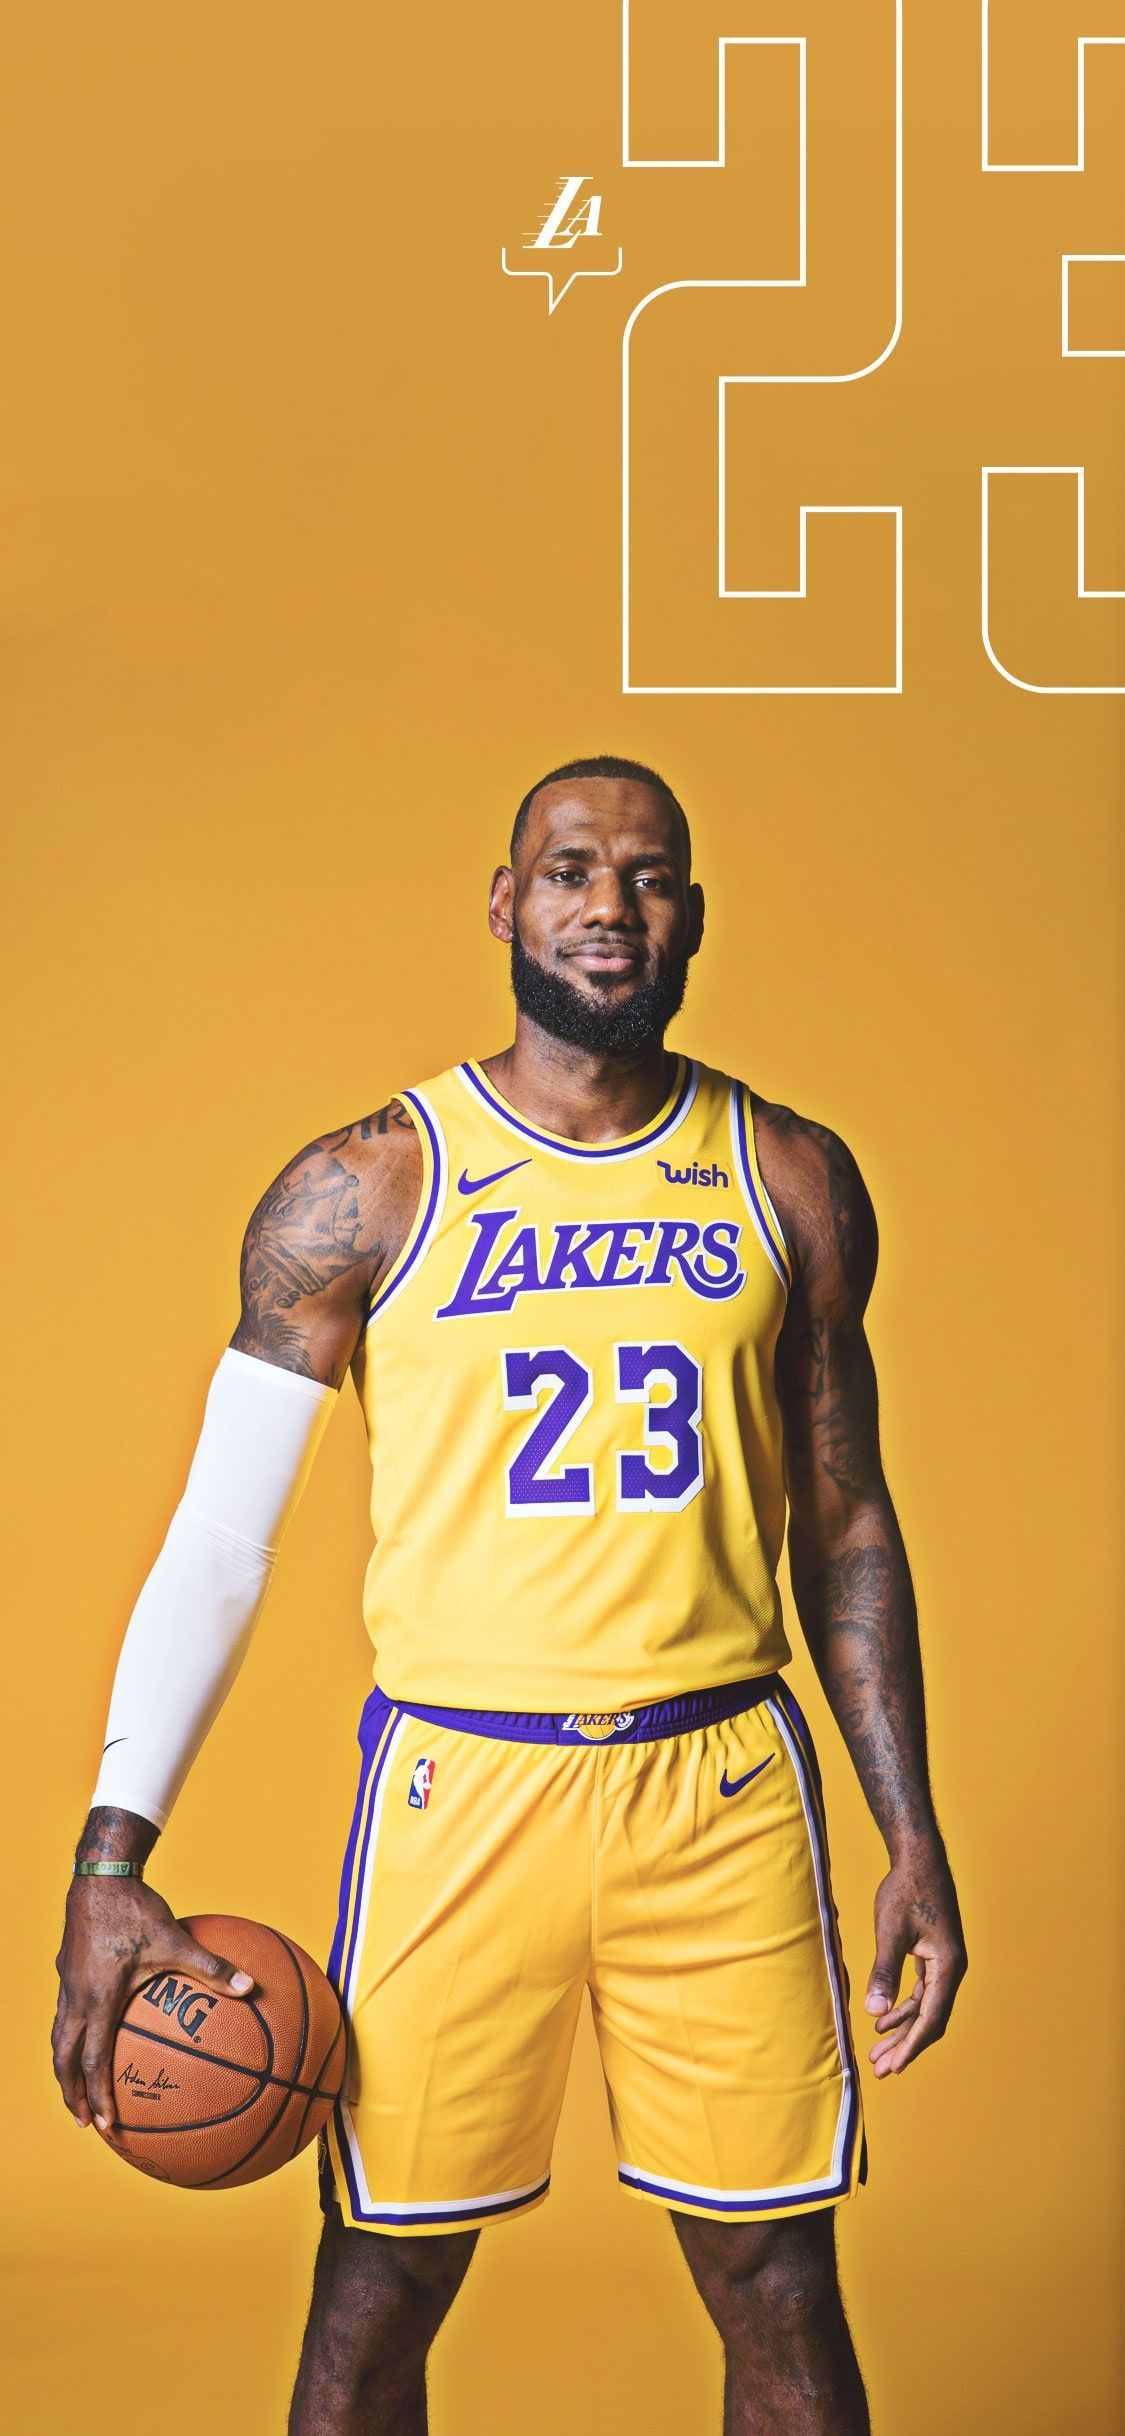 Lakers Wallpapers And Infographics In 2020 Lebron James Wallpapers Lebron James Lakers Nba Lebron James